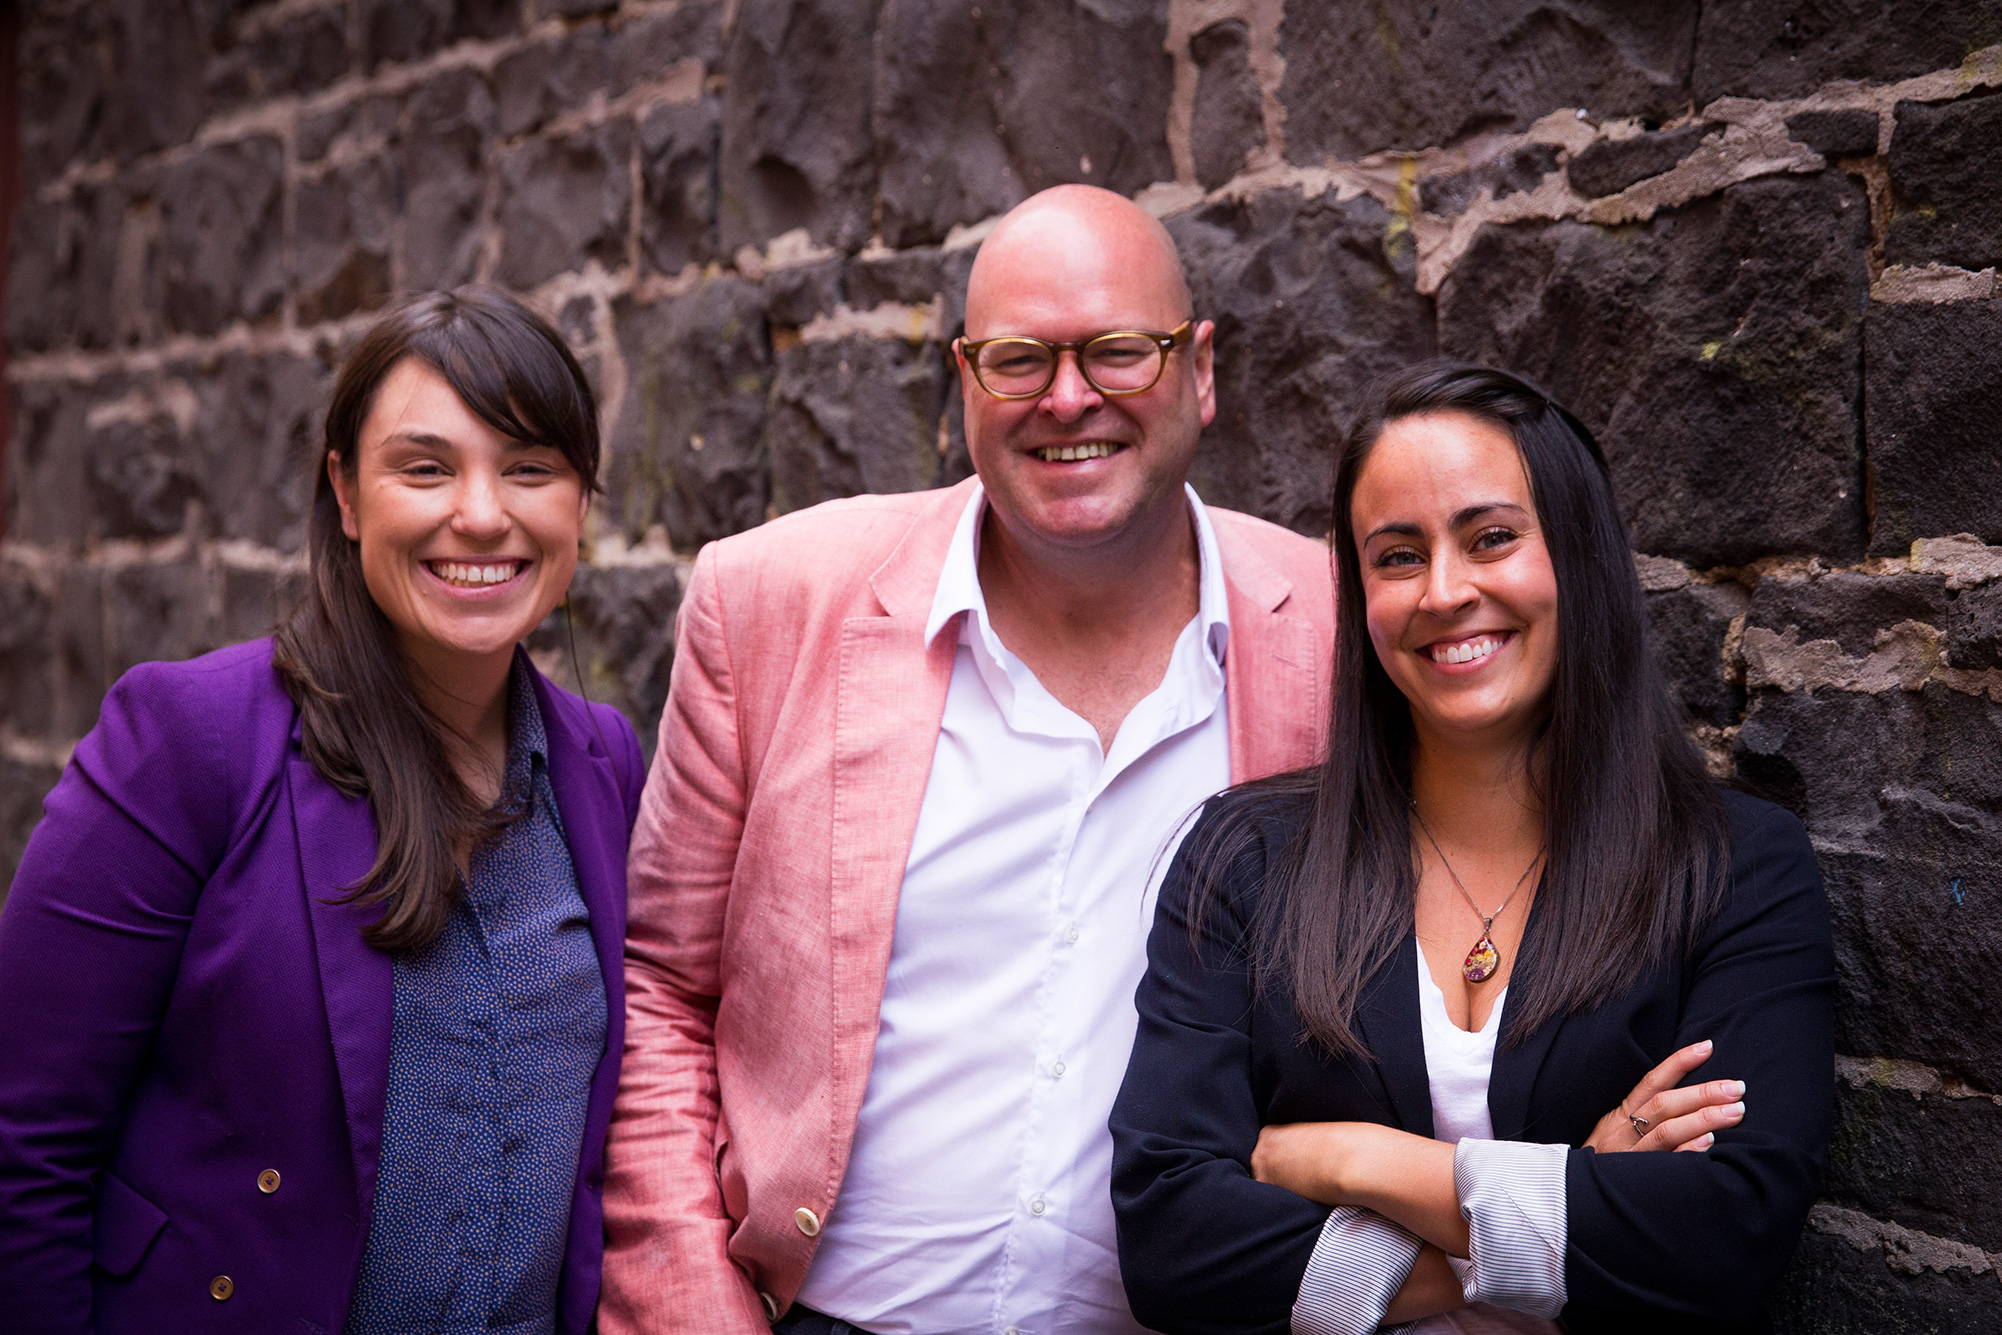 One10 partners Emma Lucia (L) and Veronica Munro (R) with founder Geoff Gourley (C)